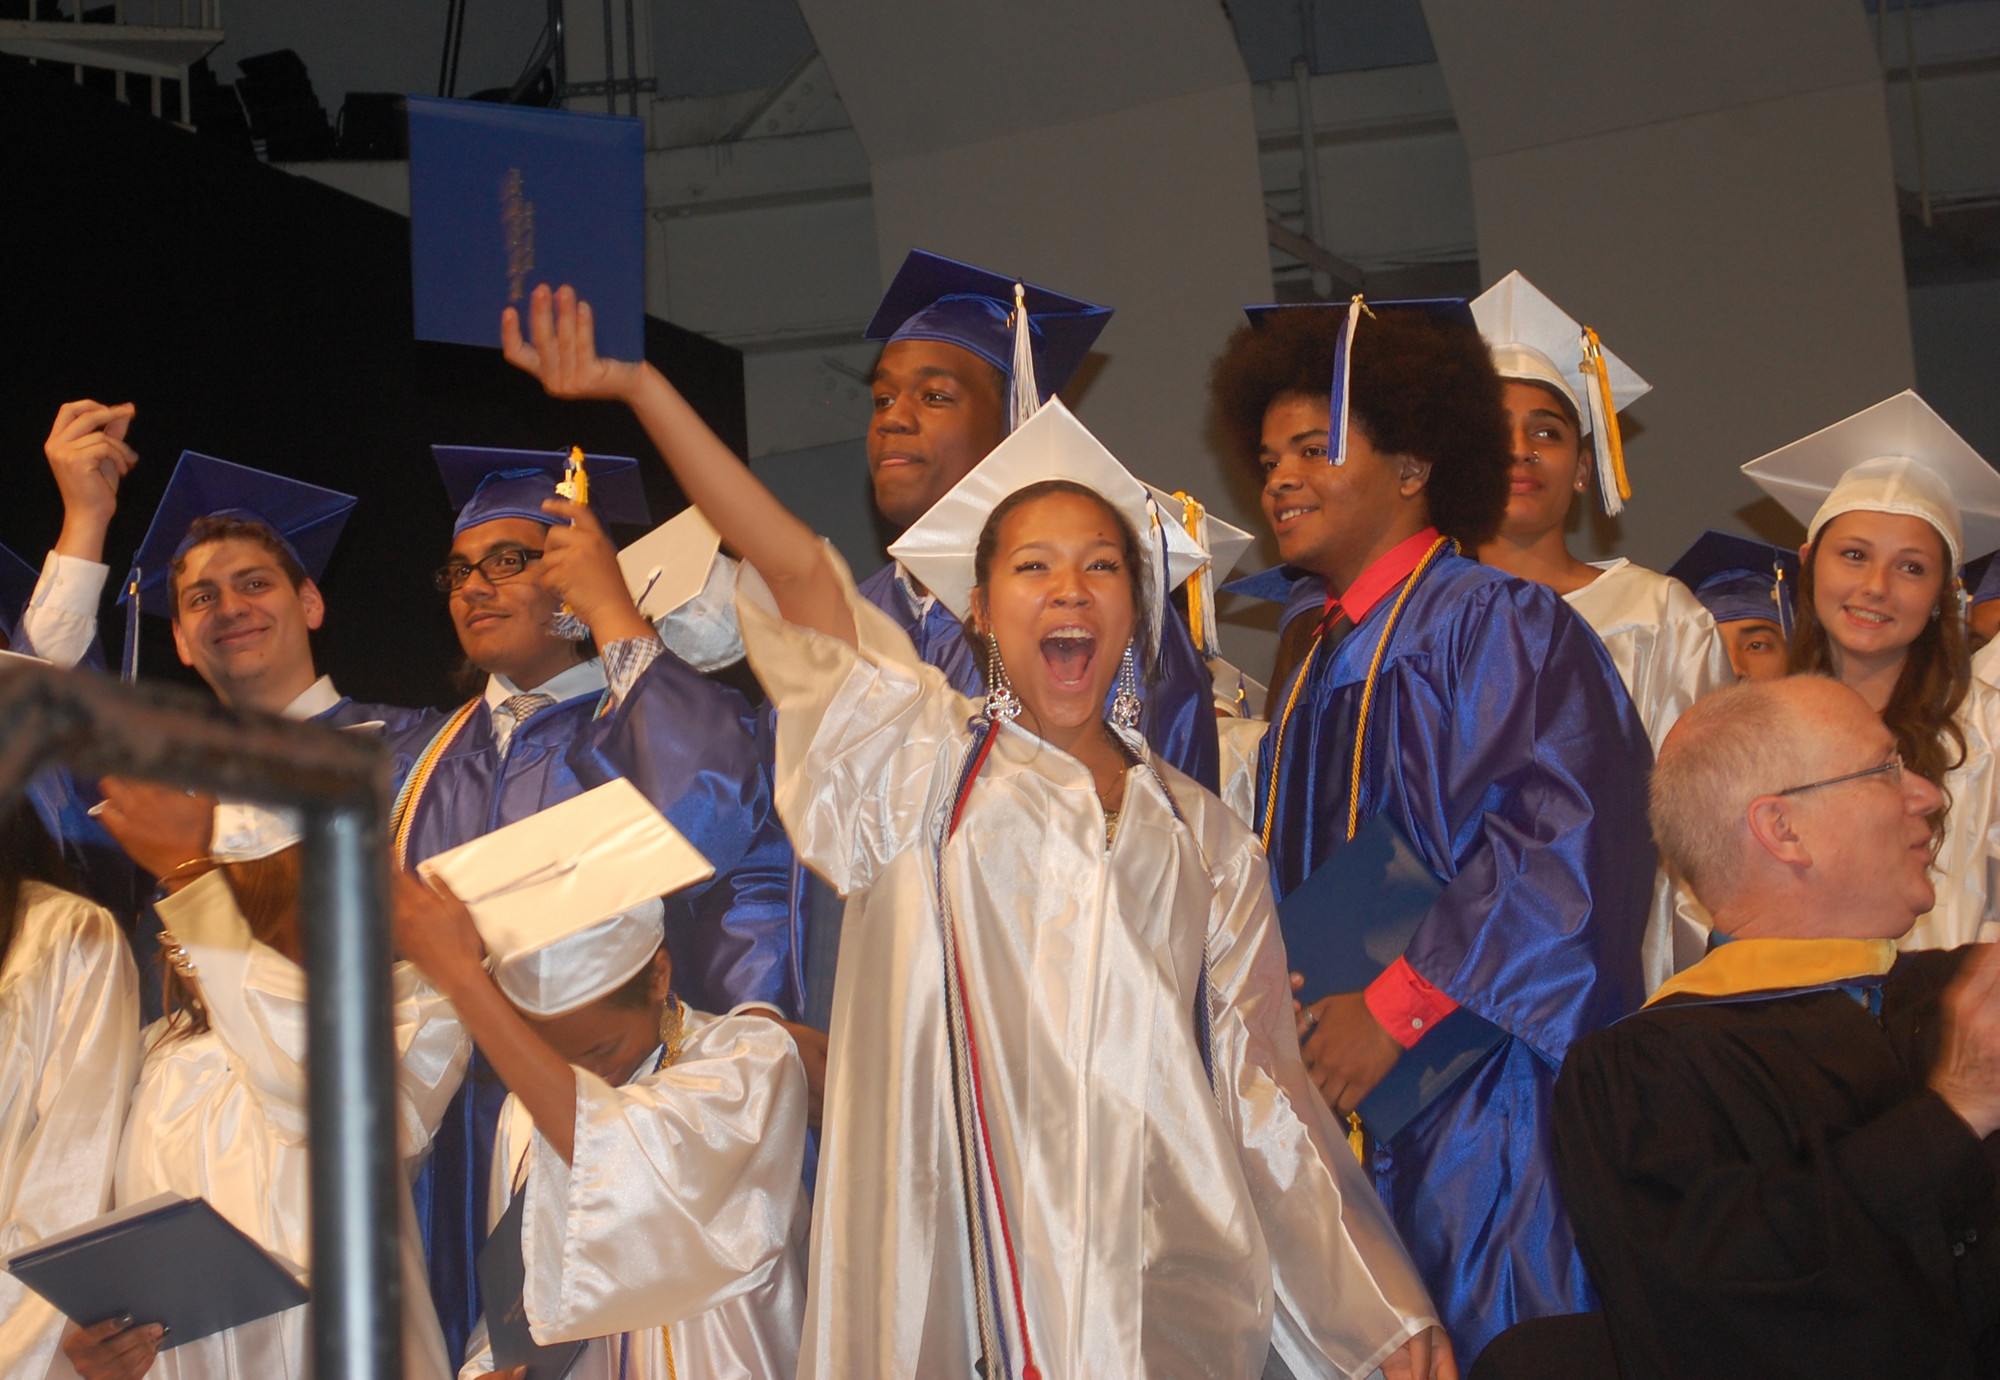 Yumiko Siev was one of 340 students to graduate from Central High School on June 19, the first time the ceremony was held at the Tilles Center.